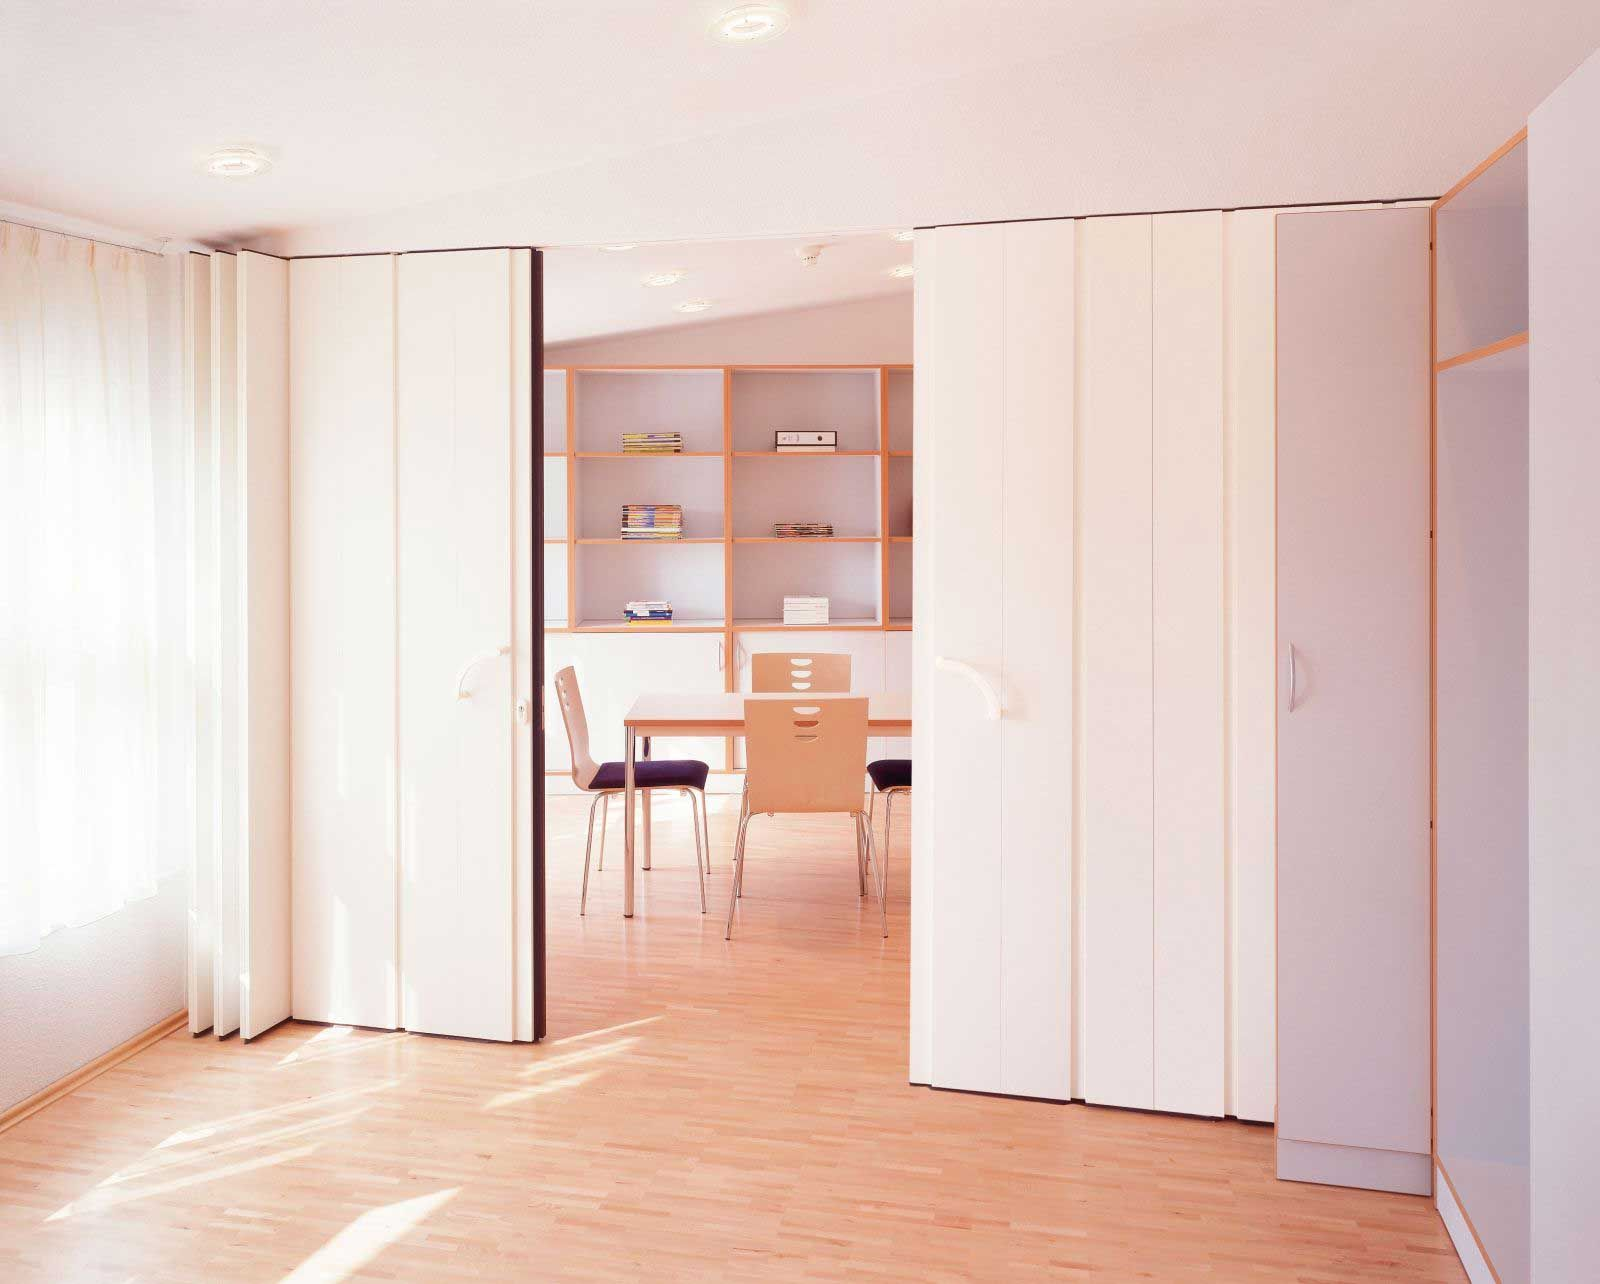 Dorma variplan movable wall partitions remodel for Retractable walls residential